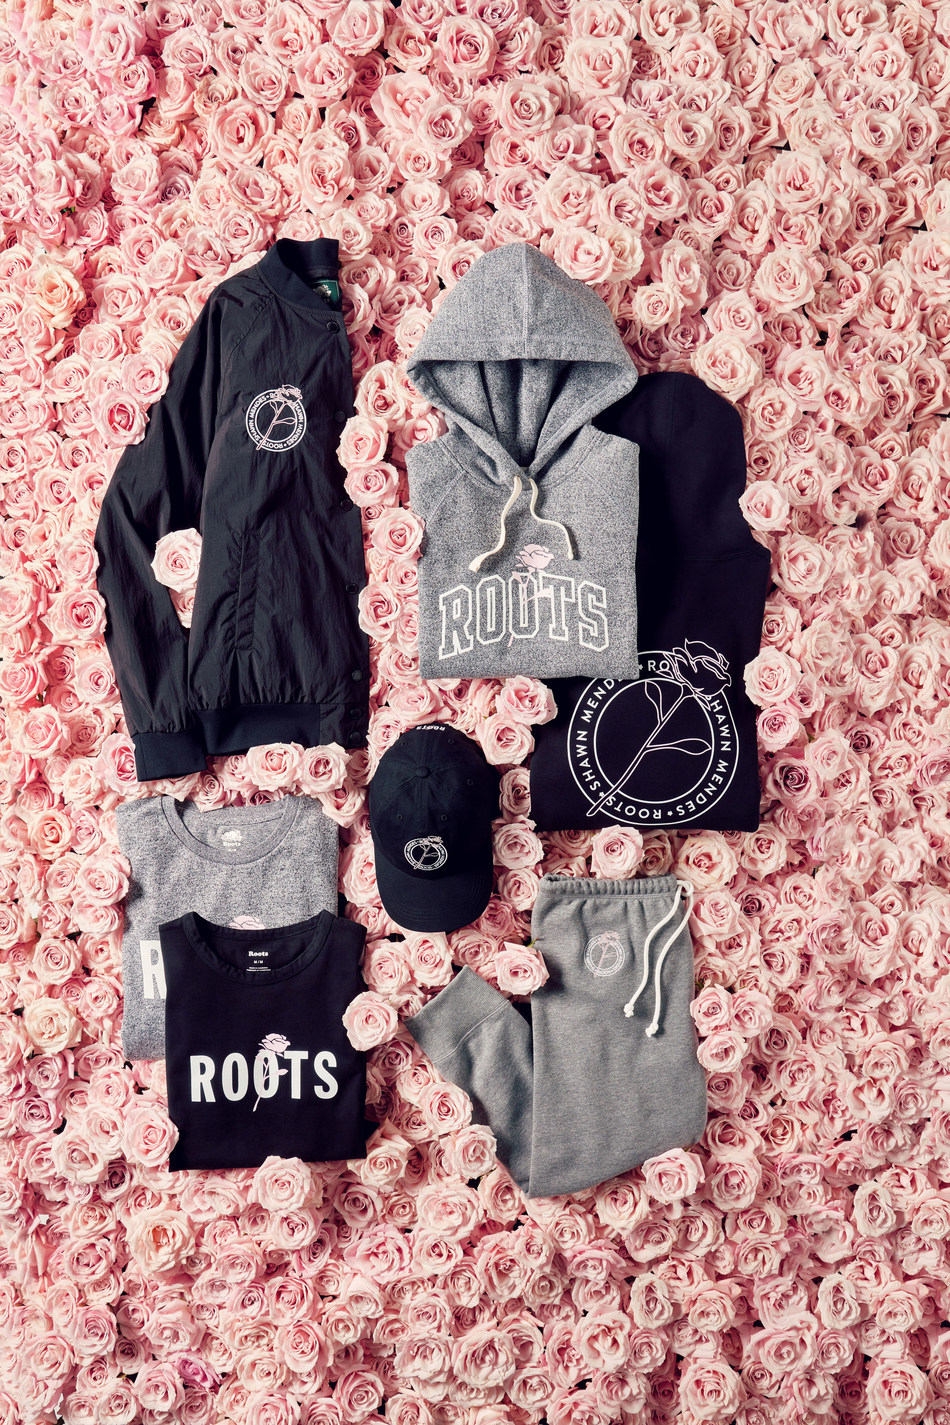 Roots x Shawn Mendes Collection - Sept 2019 (CNW Group/Roots Corporation)